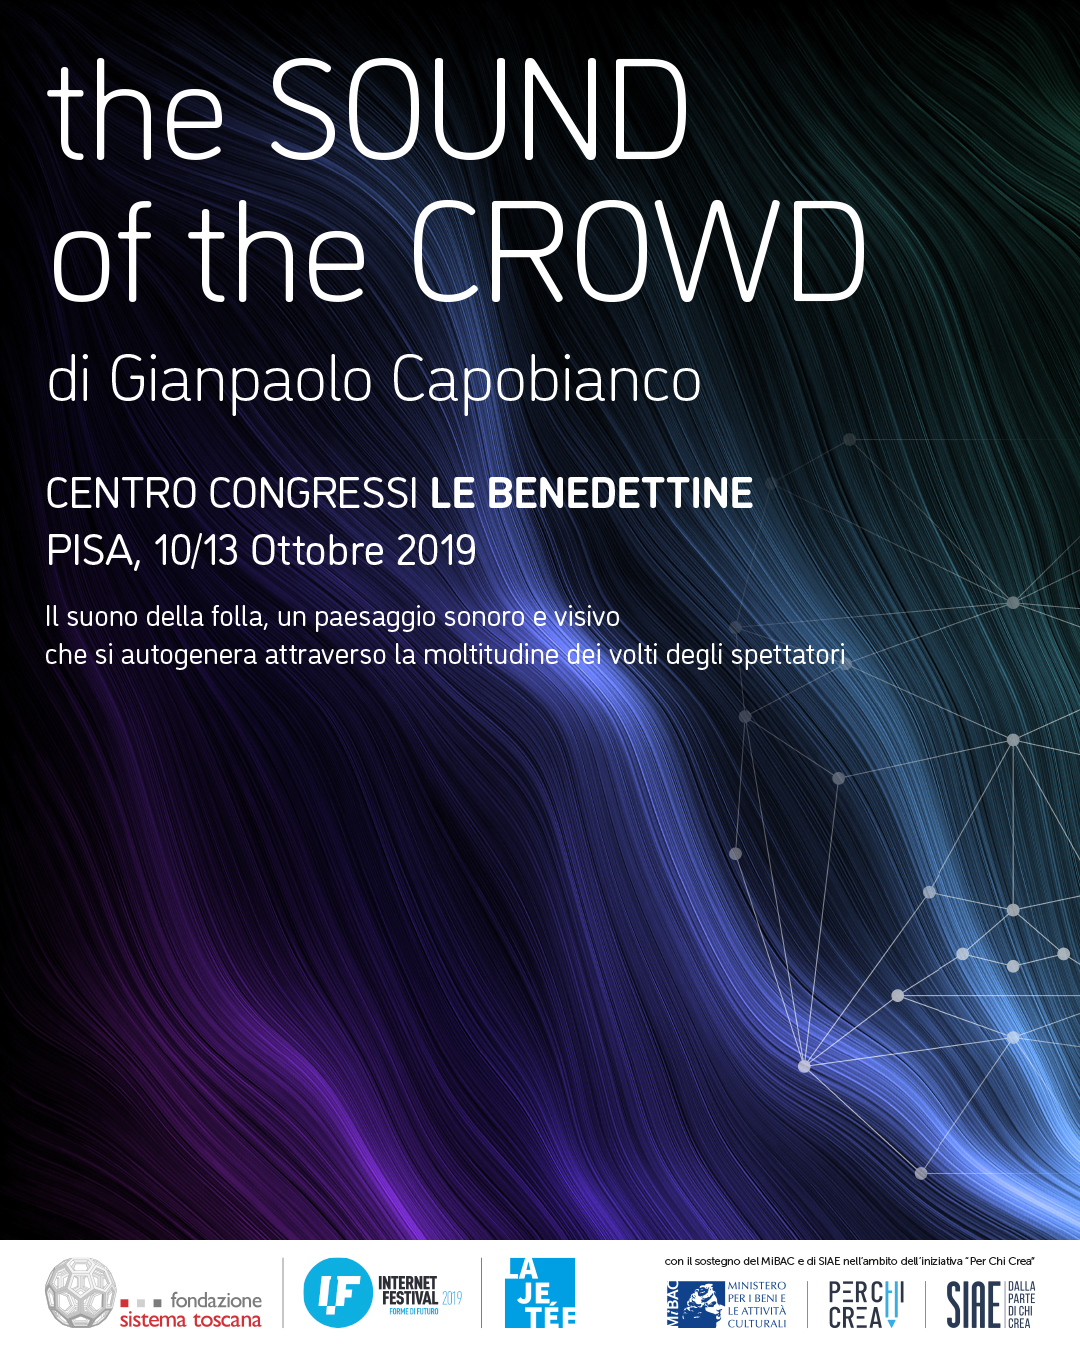 THE SOUND OF THE CROWD – Un'opera prima di Gianpaolo Capobianco a Pisa dal 10 al 13 ottobre, Internet Festival 2019